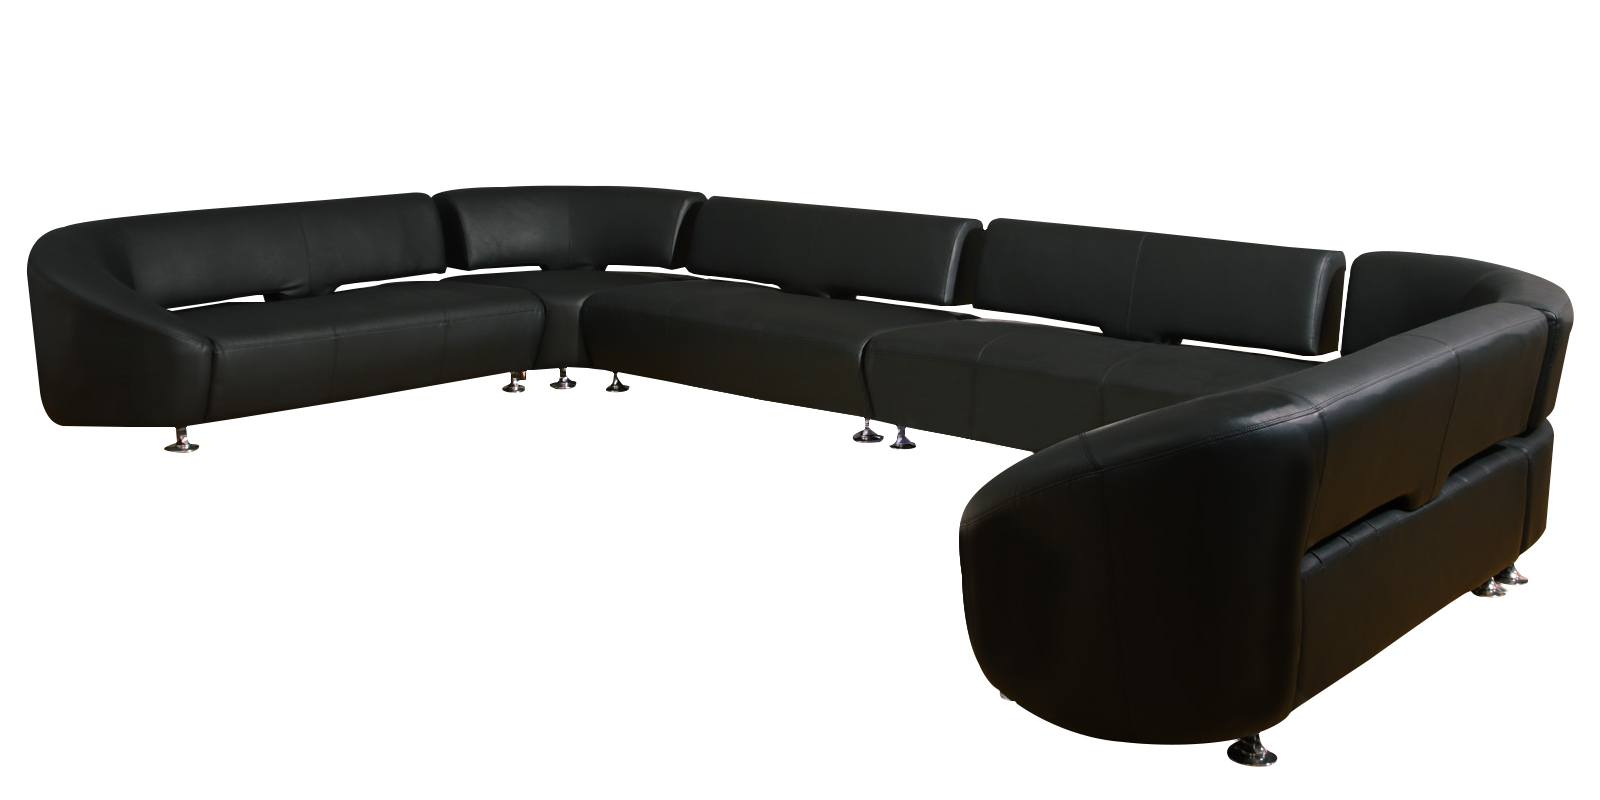 Gwendolyn Luxurious C Shape Sofa In Black Lethearette | Dreamzz pertaining to Gwen Sofa Chairs